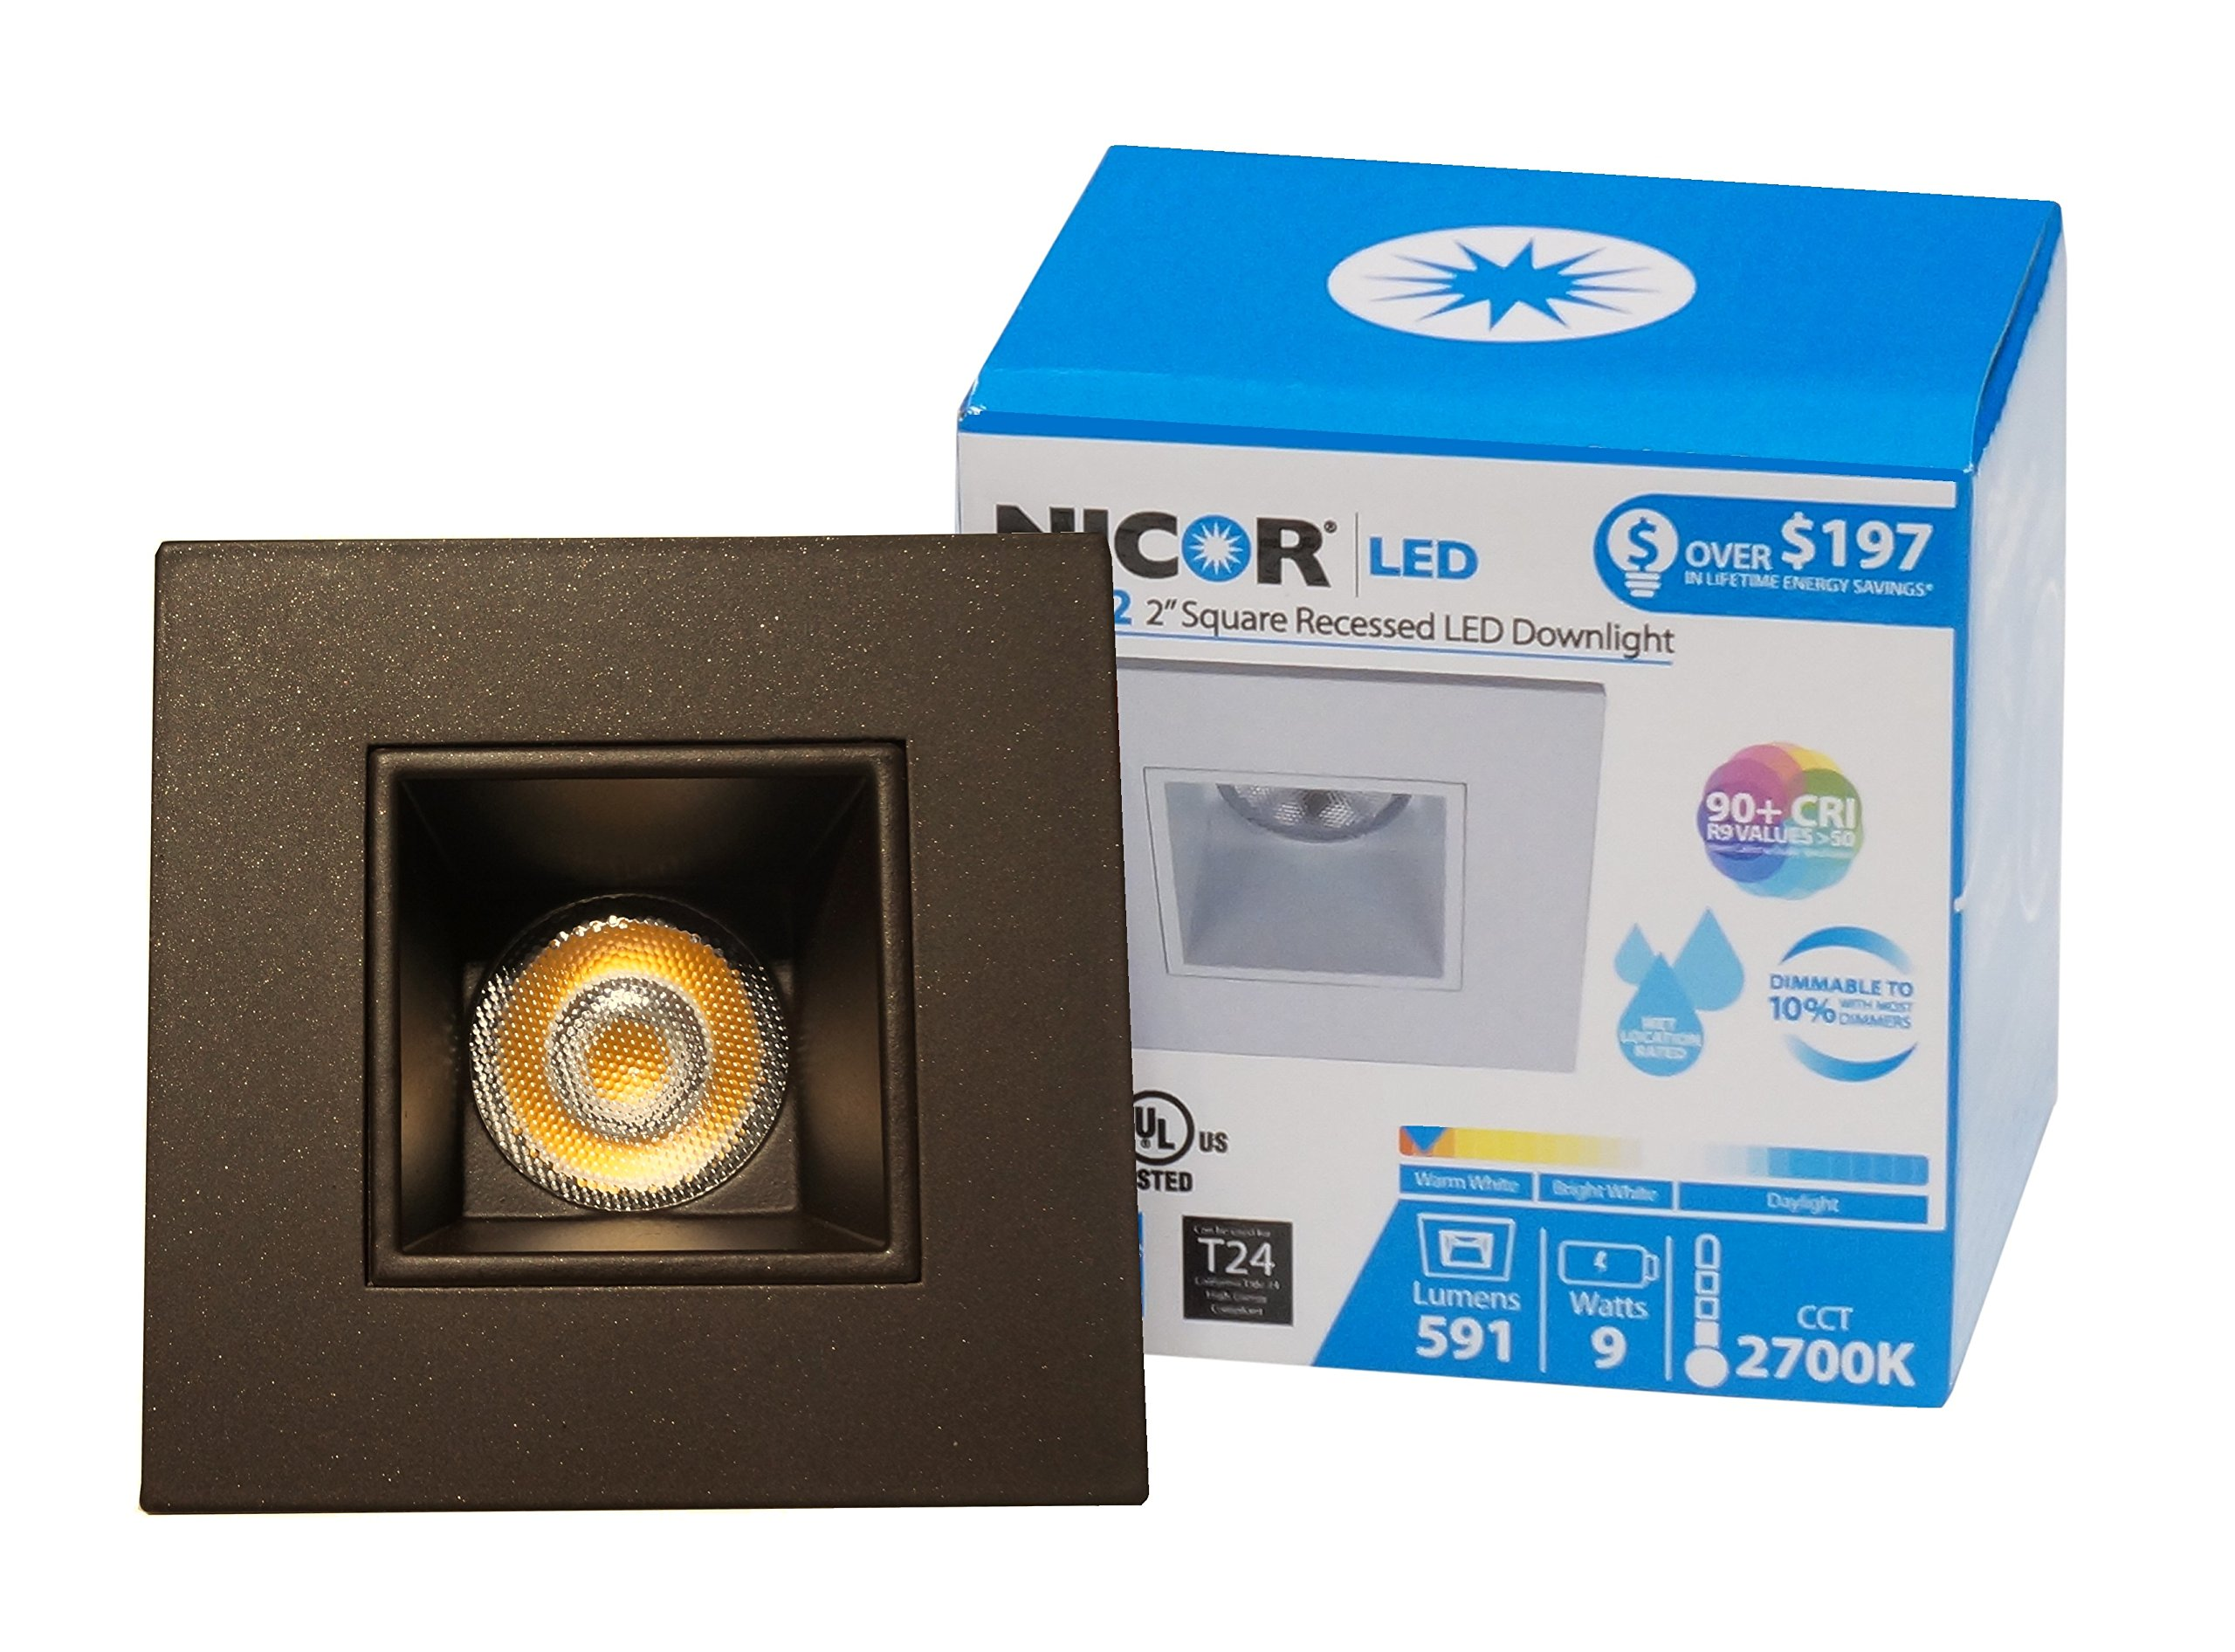 NICOR Lighting 2-Inch Square 3000K LED Downlight Fixture for 2-Inch Recessed Housings, Oil-Rubbed Bronze (DQR2-10-120-3K-OB) by NICOR Lighting